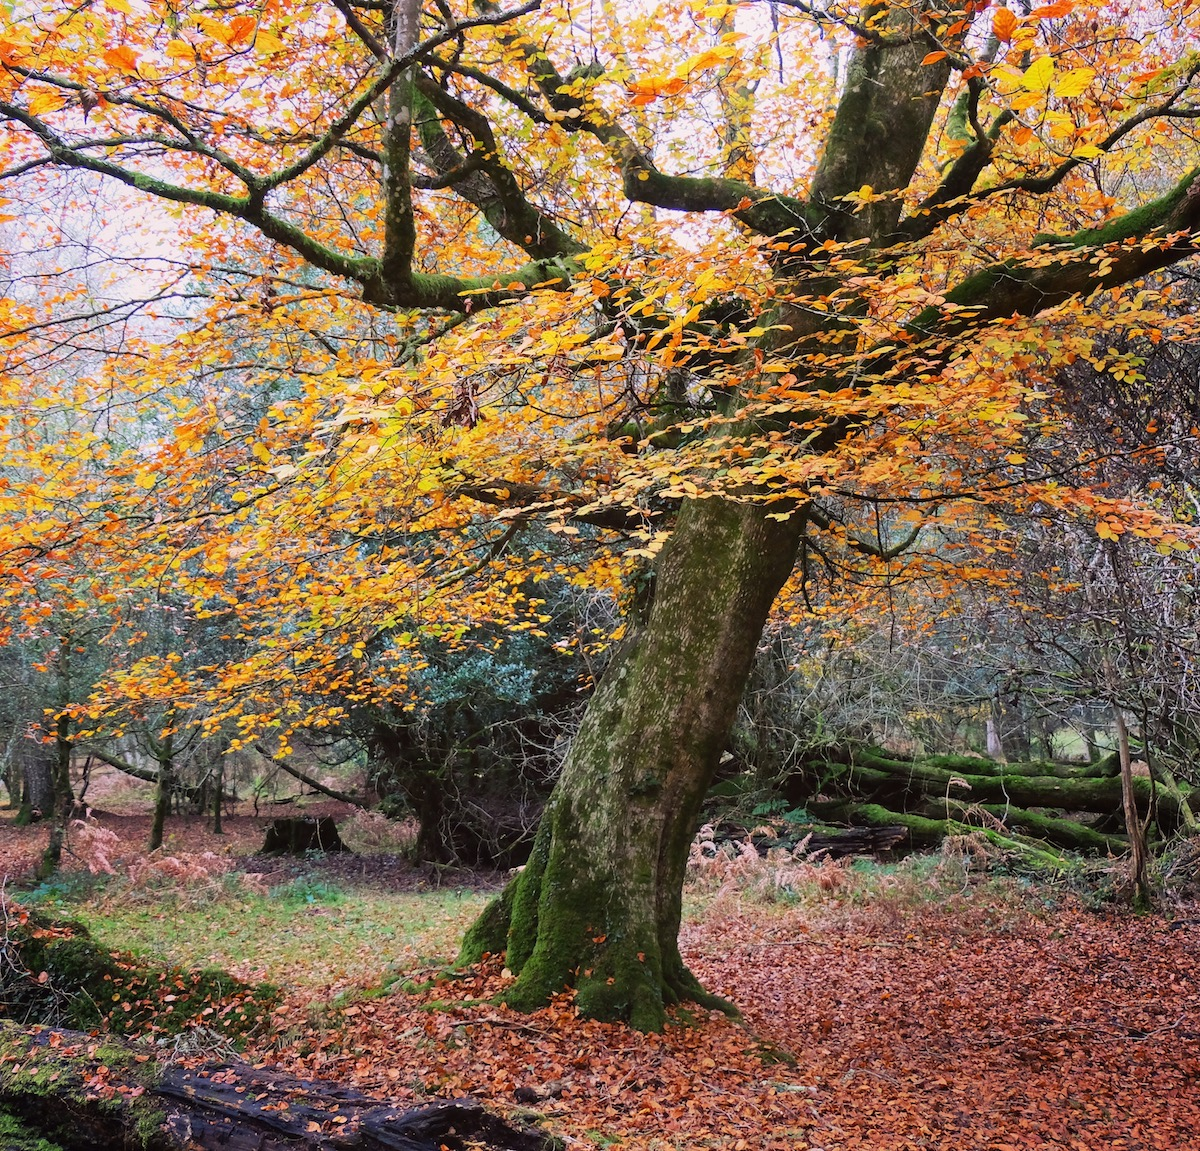 Autumn Leaves in New Forest